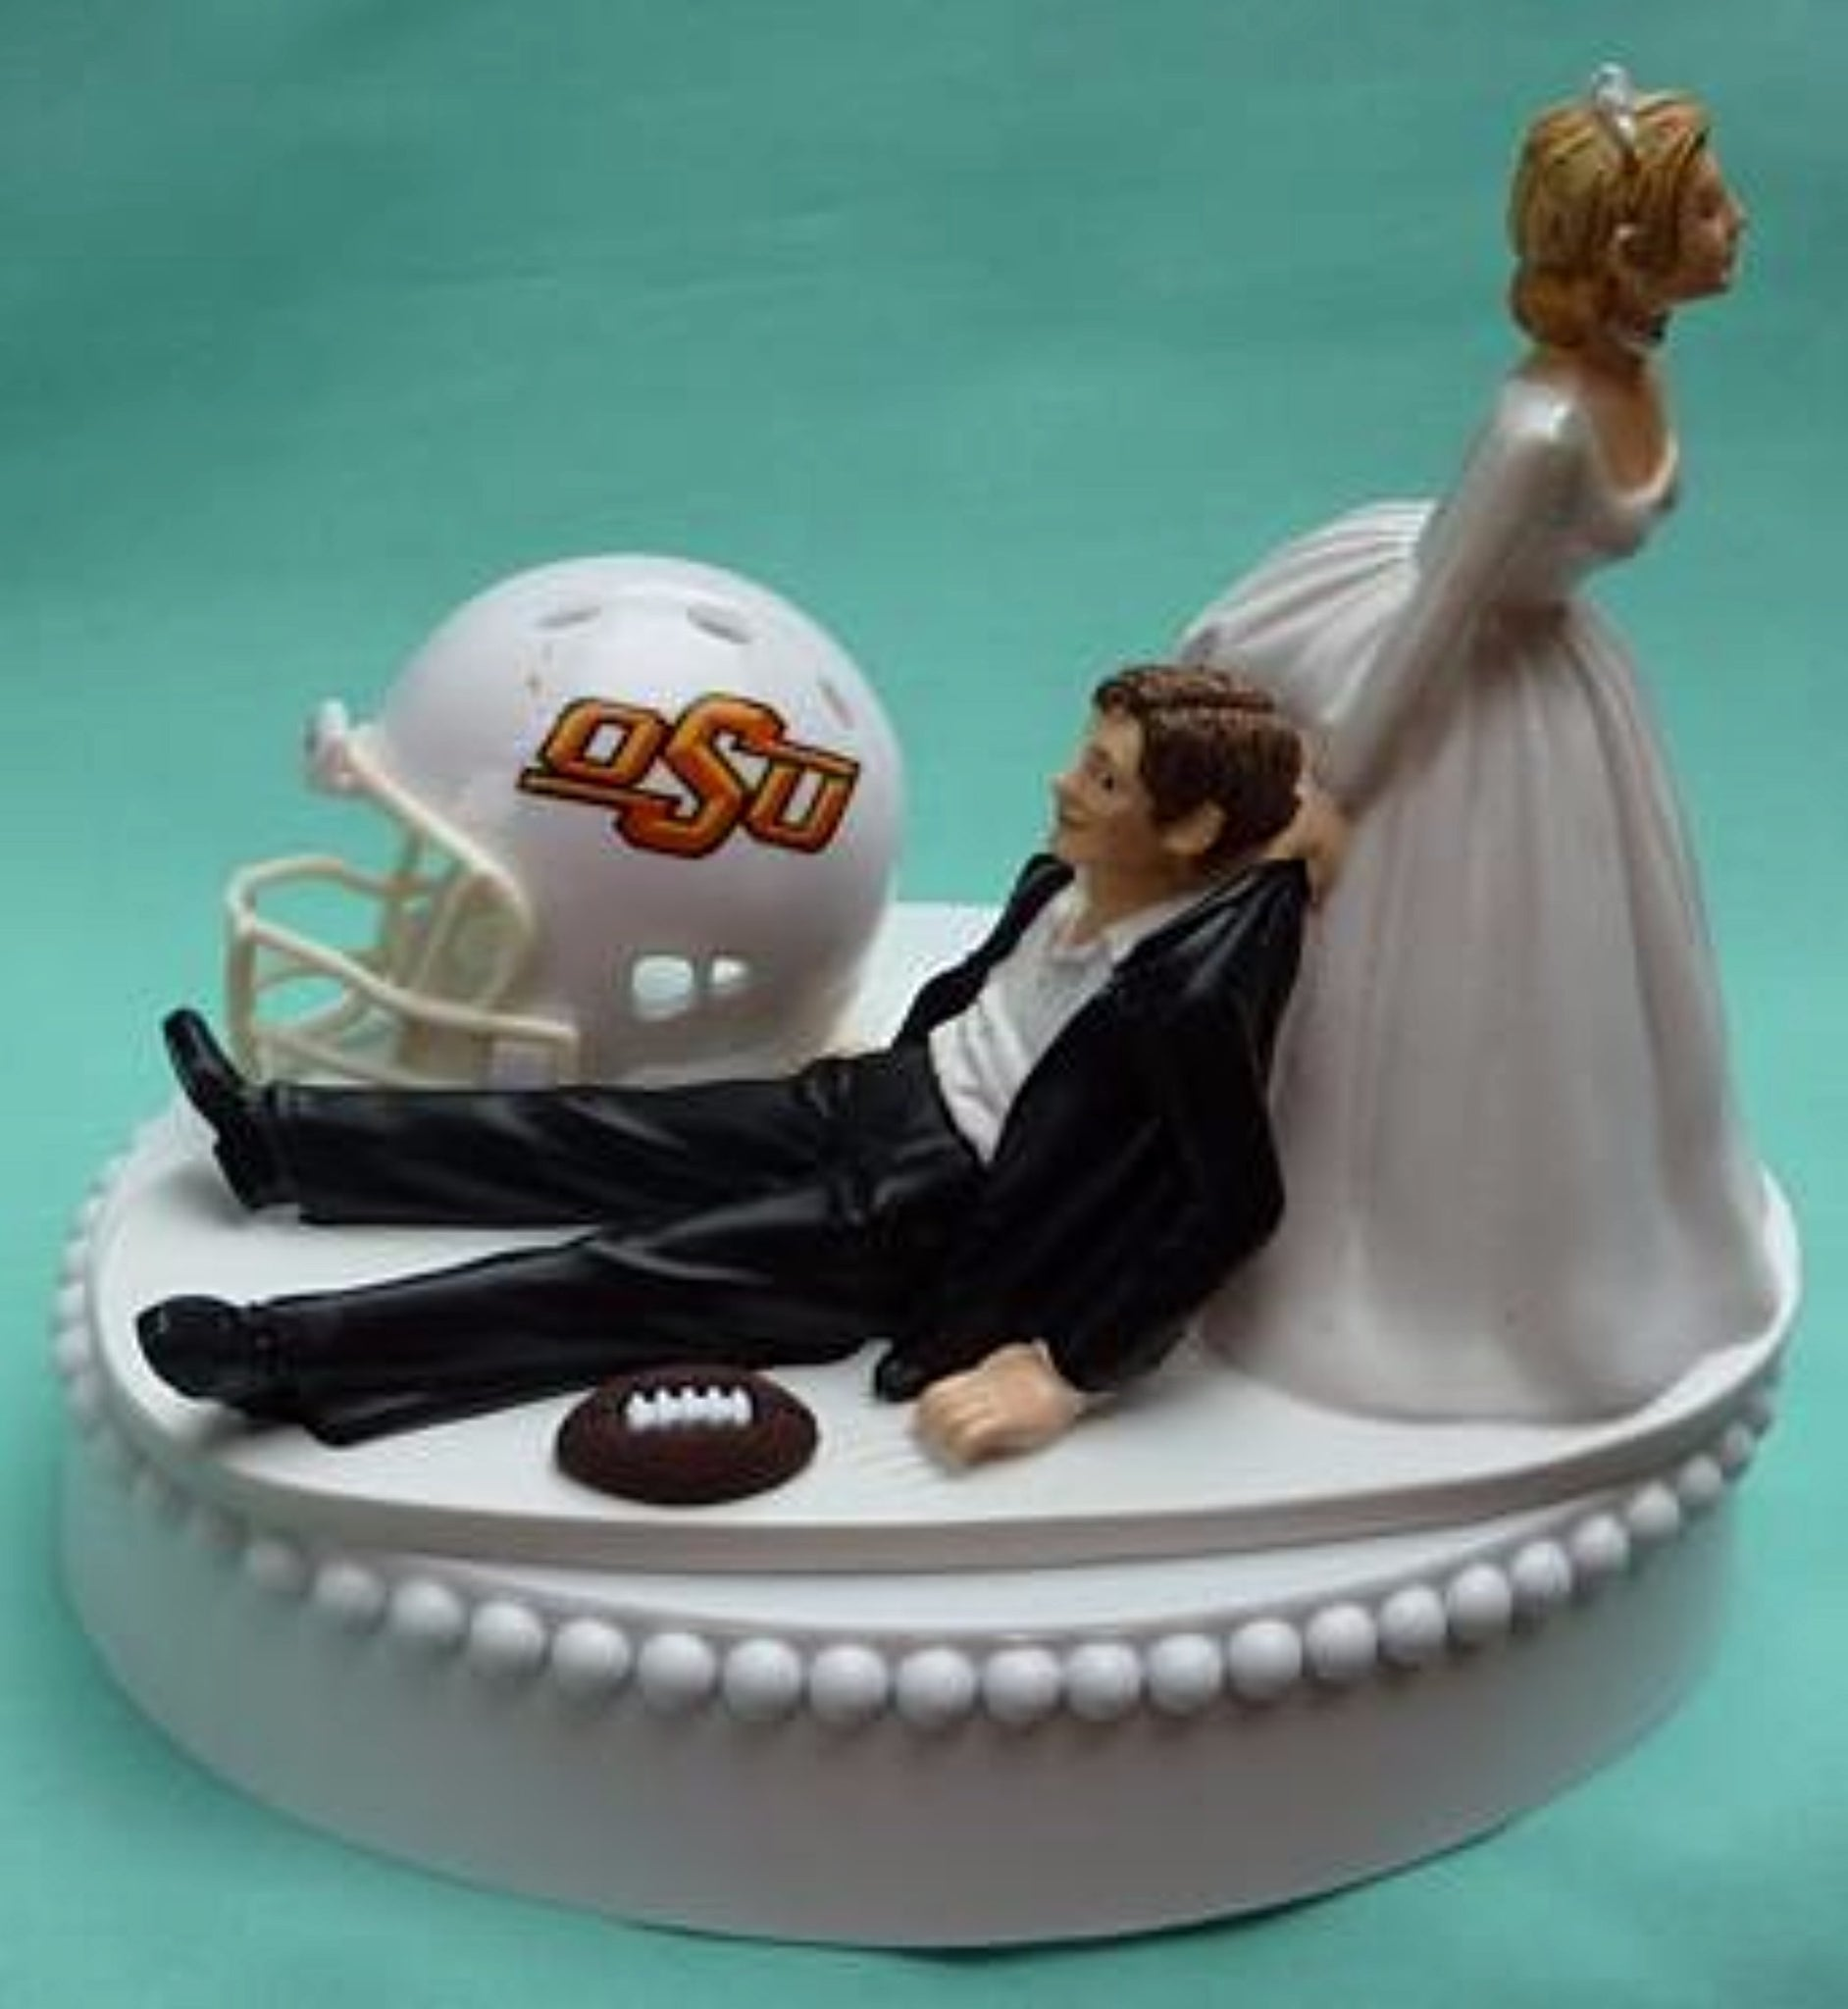 Oklahoma St. University wedding cake topper OSU Cowboys football State sports themed humorous funny bride dragging groom groom's cake top helmet ball reception gift Fun Wedding Things